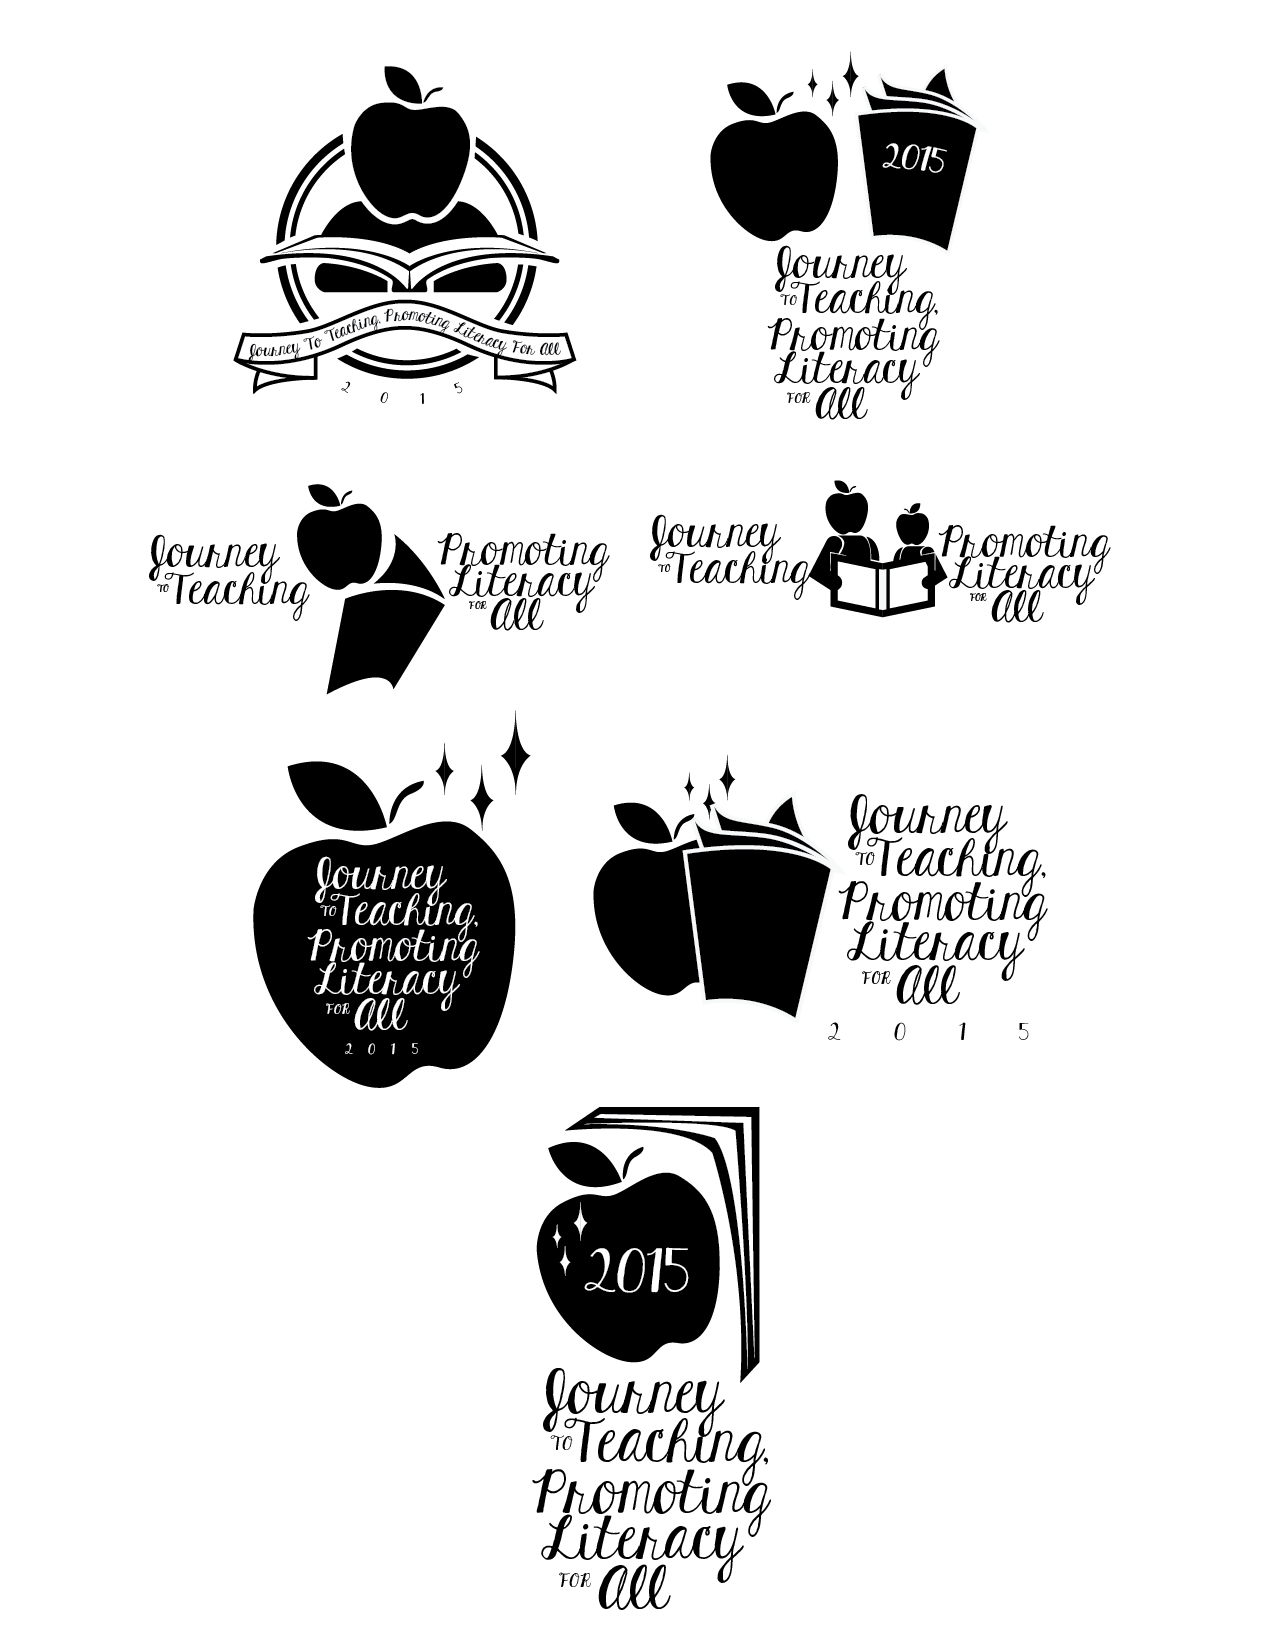 All_WhimsicalFonts-01.jpg